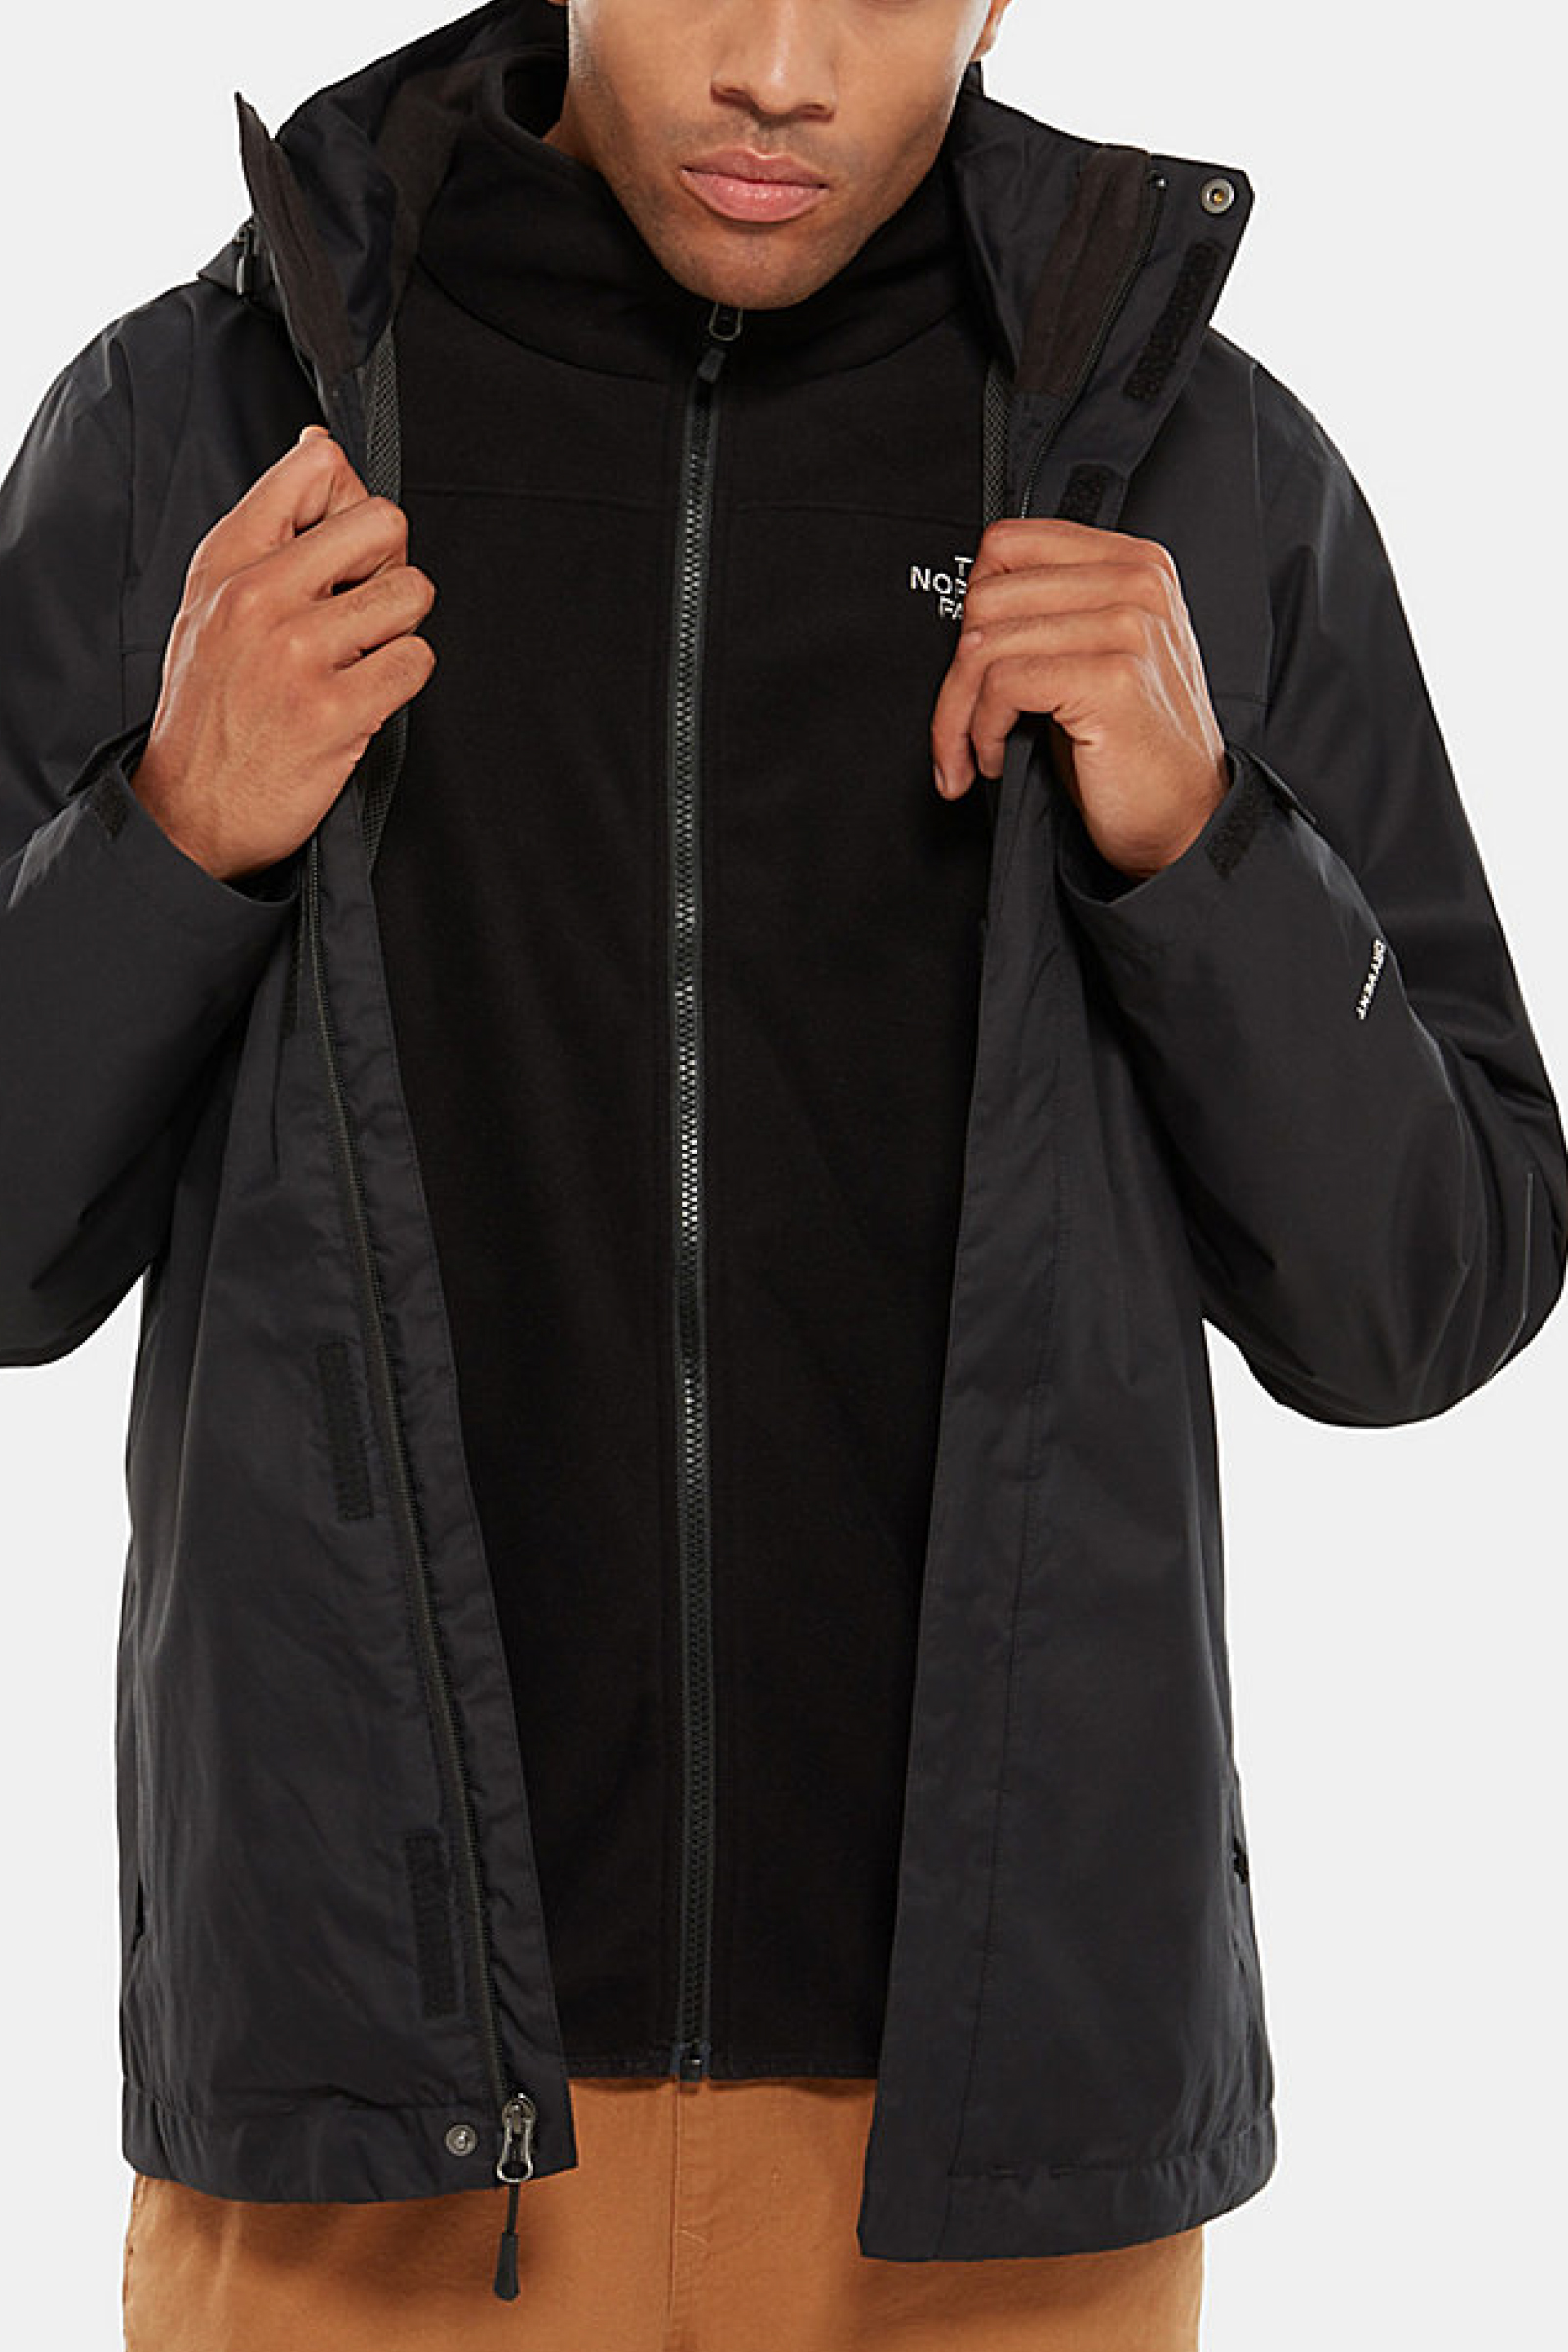 THE NORTH FACE Man Jacket Evolve II Triclimate® model THE NORTH FACE | Jacket | CG55JK3